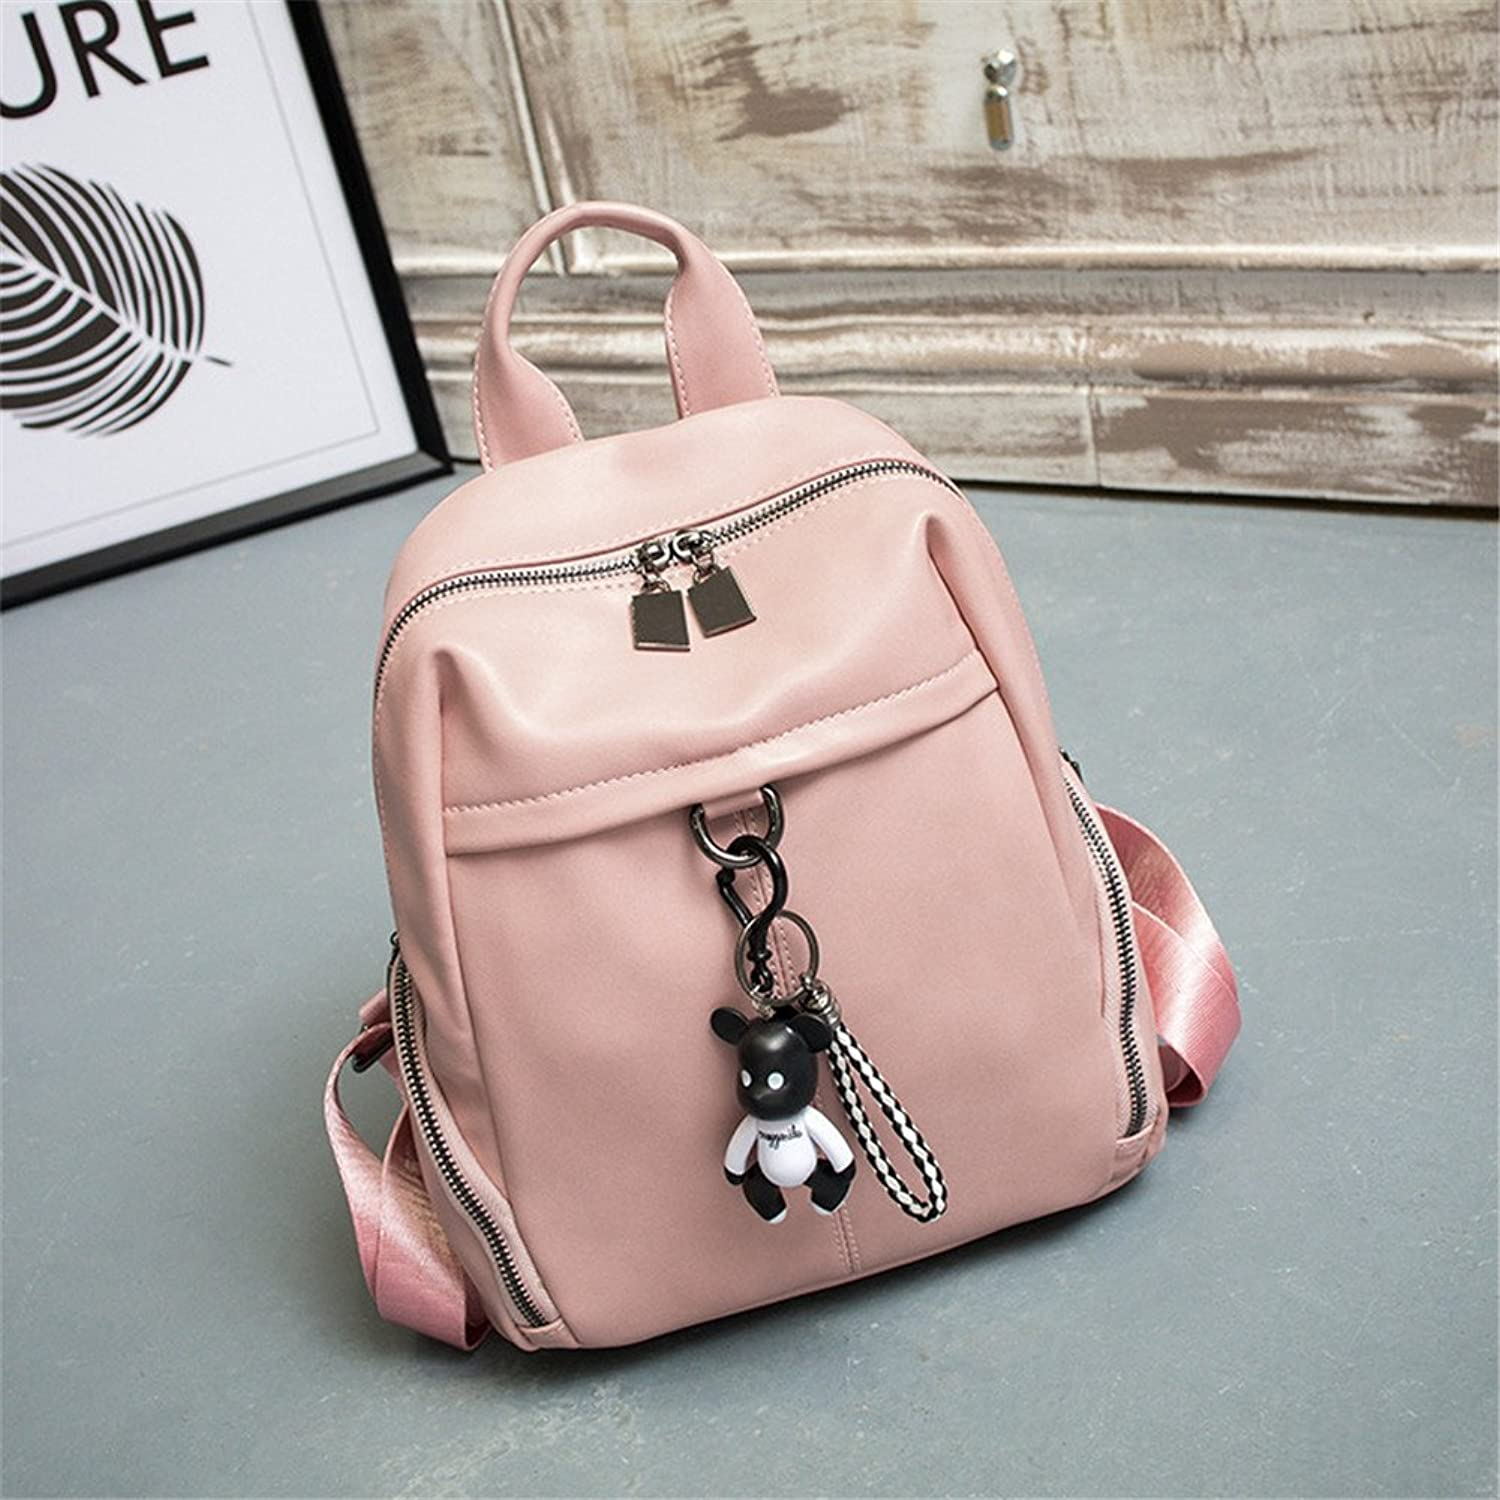 Travel Laptop Backpack Purse Fashion Stylish Casual Shoulder Bags Handle Bag